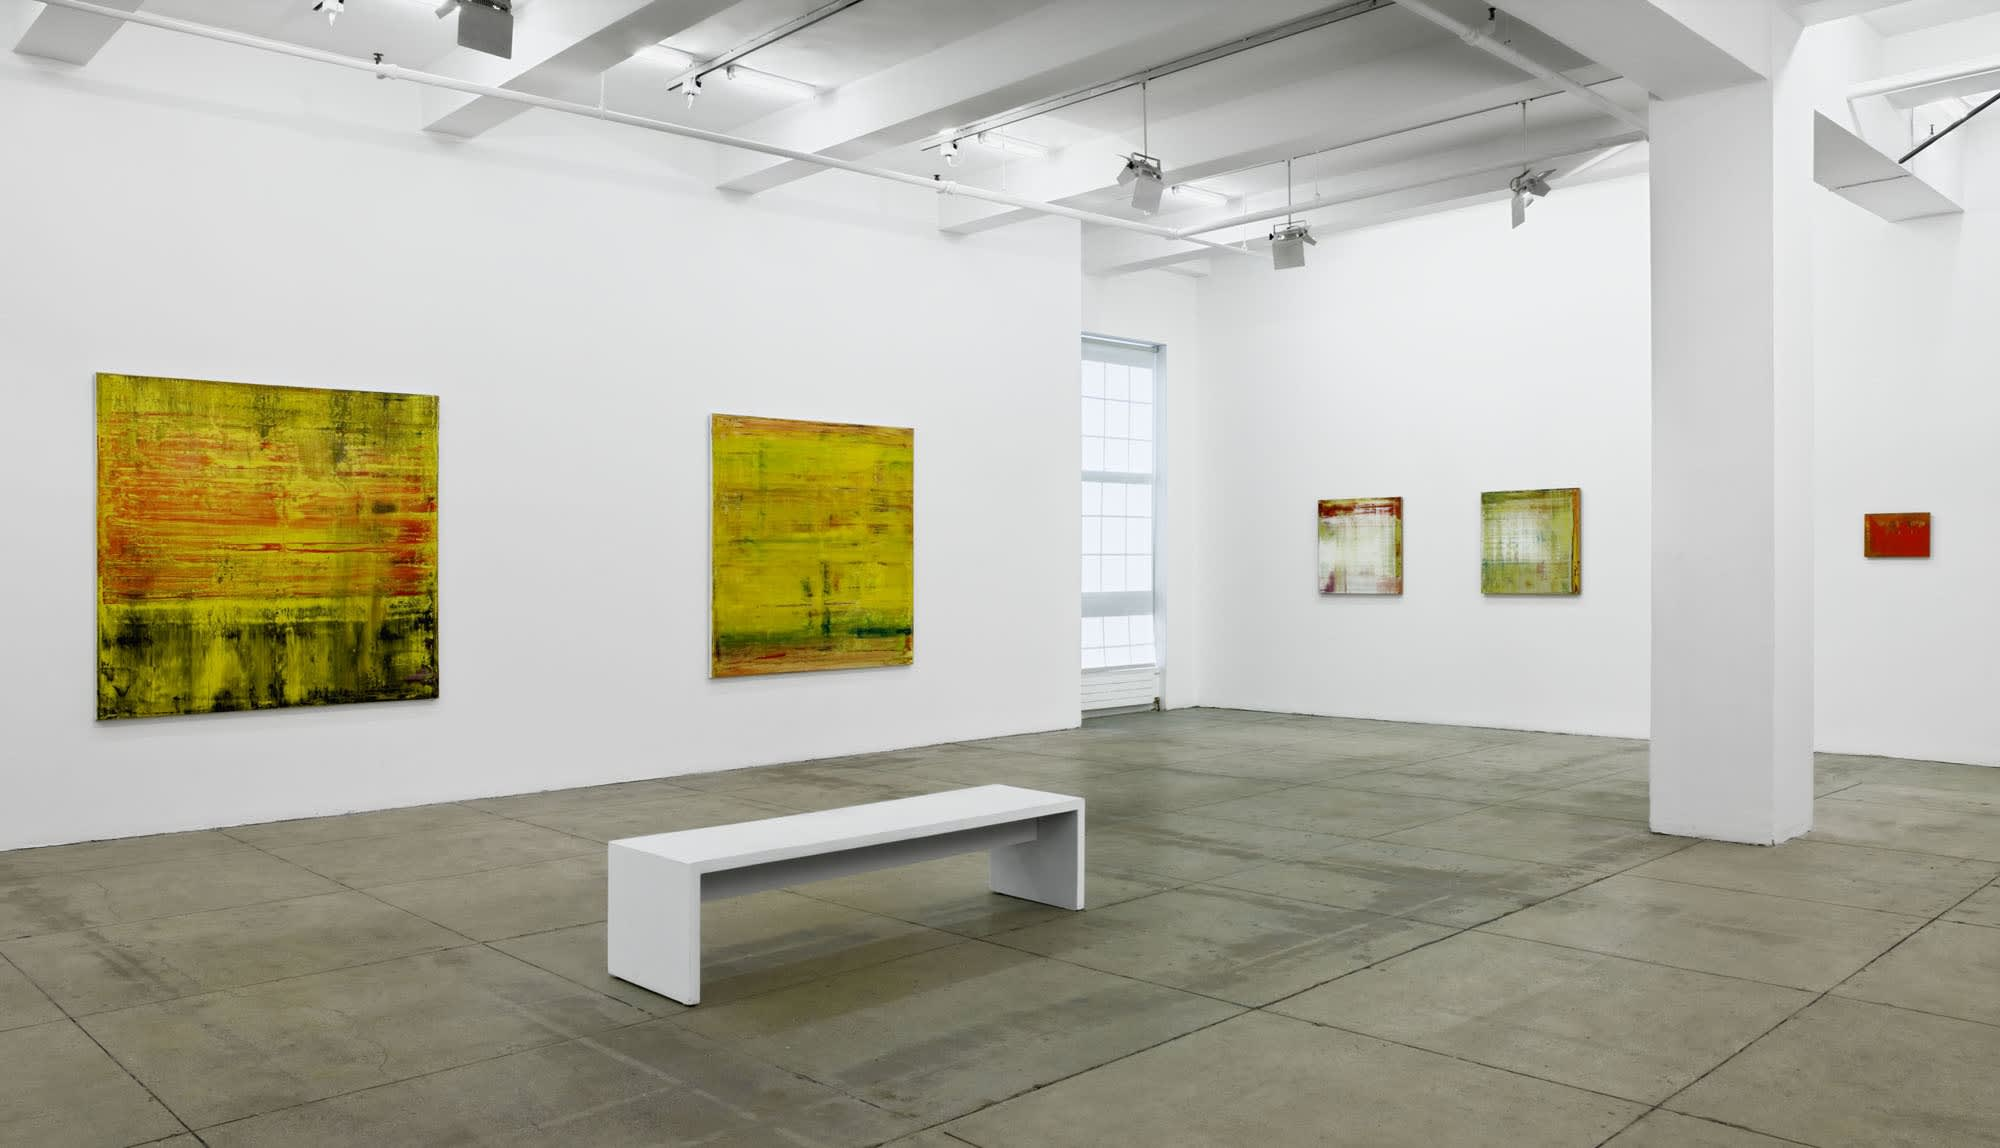 5 abstract paintings of various sizes span two walls with a window in-between. A column and a white bench sit in the center of the room.